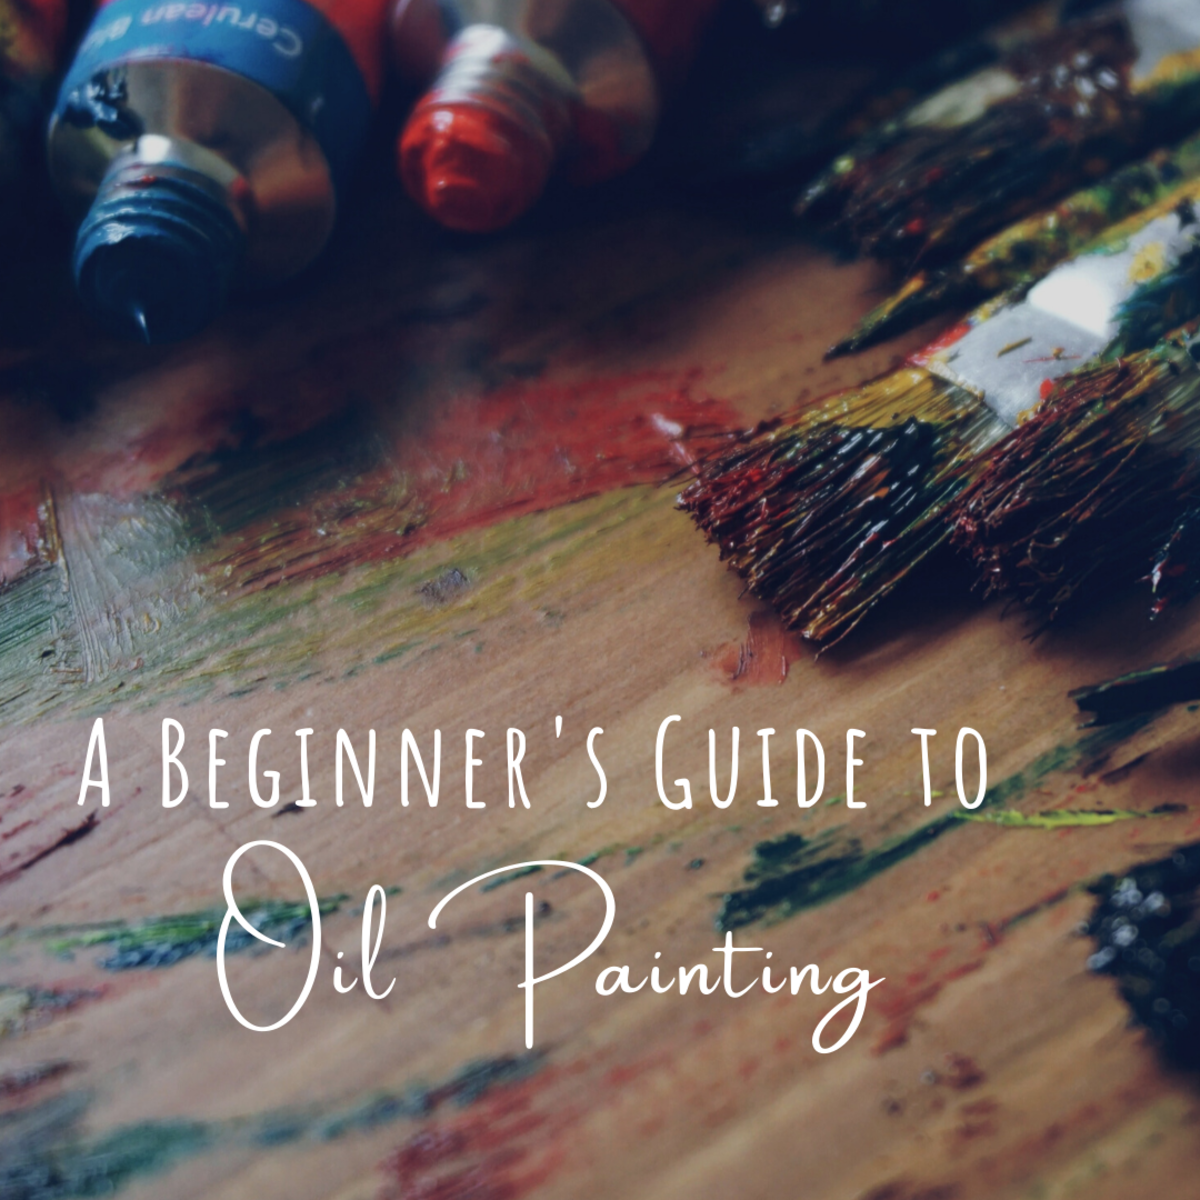 A basic guide to oil painting (for beginners)